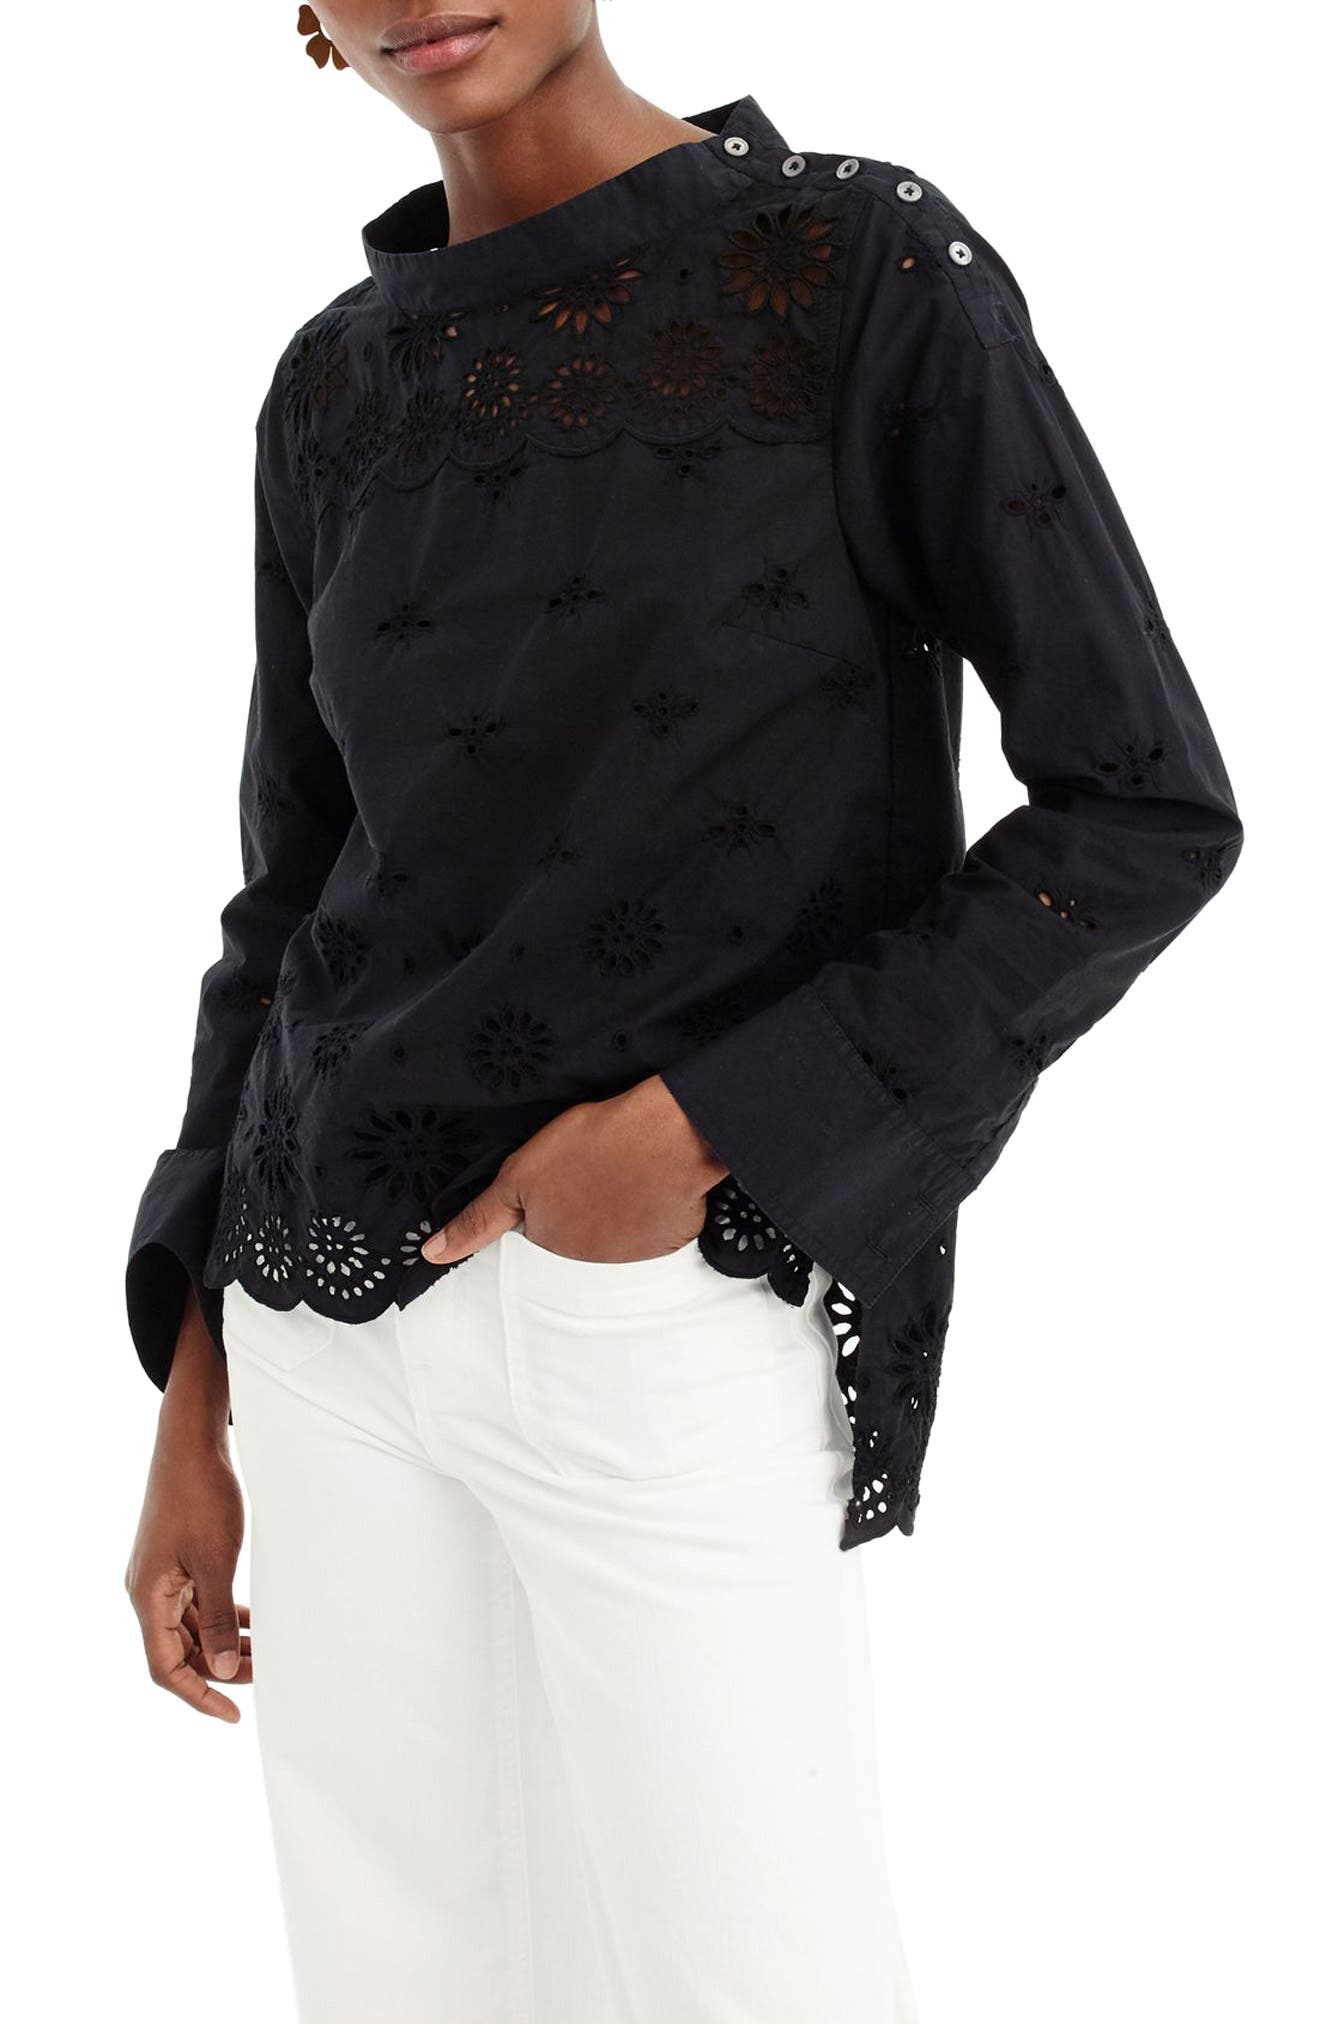 J.Crew Rooster Eyelet Cotton Top (Regular & Petite)